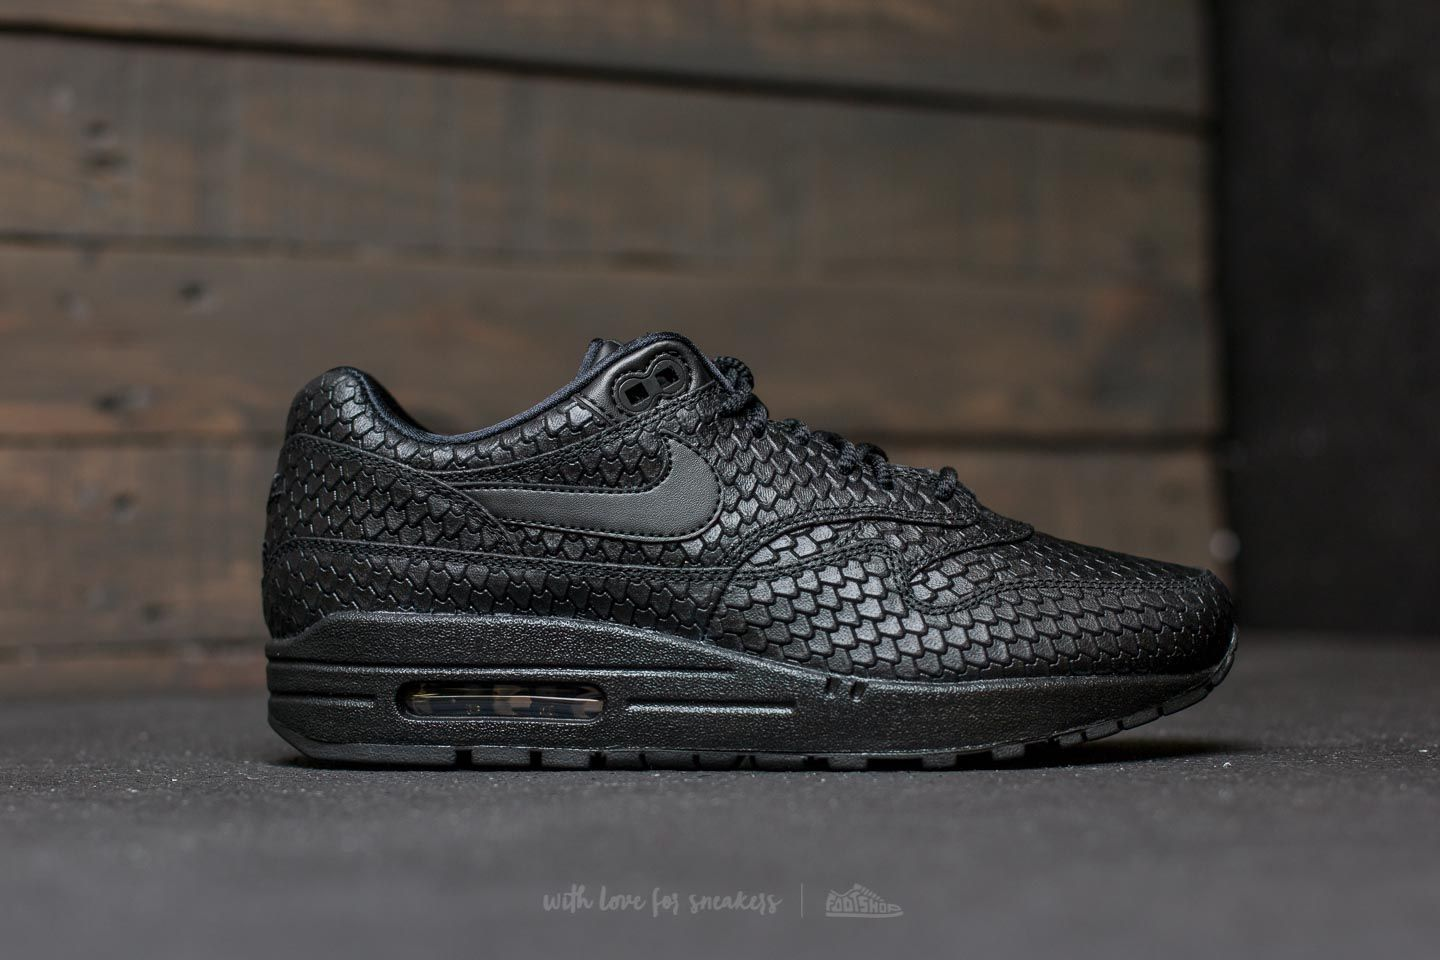 Nike Wmns Air Max 1 Premium Black  Black-Anthracite at a great price 73 9a5573e01